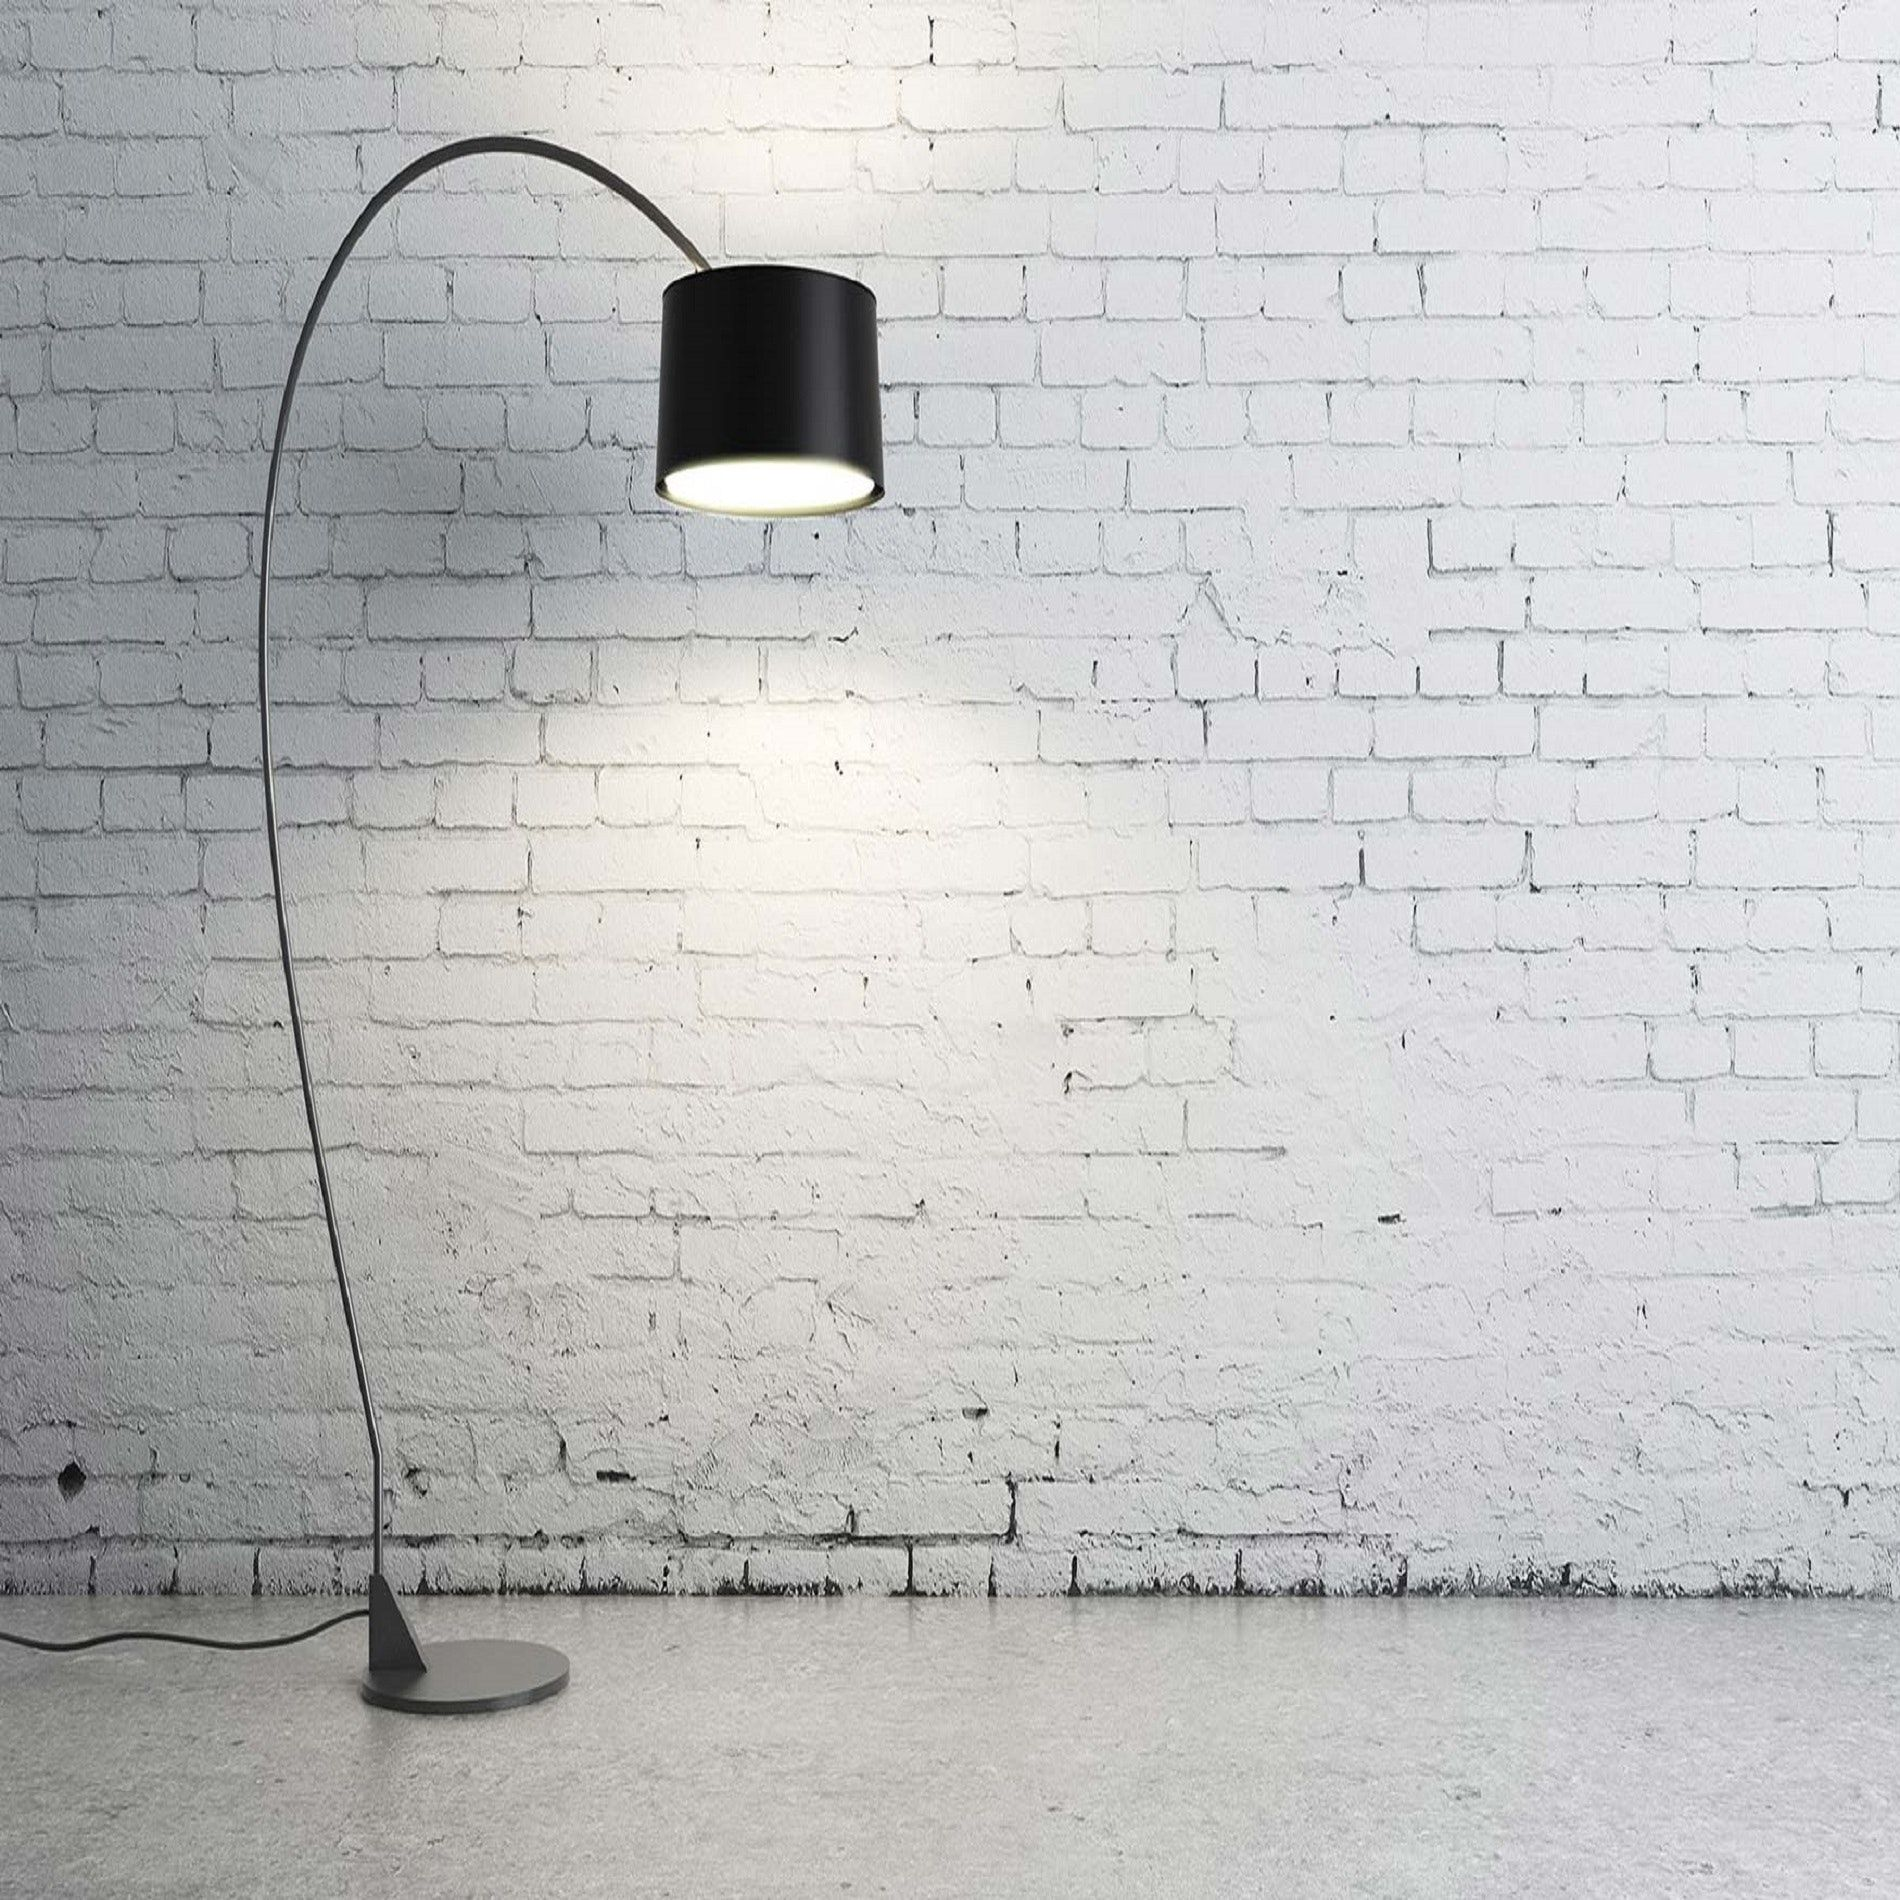 10 Best Bright Floor Lamps of 2020 Buying Guide Bright